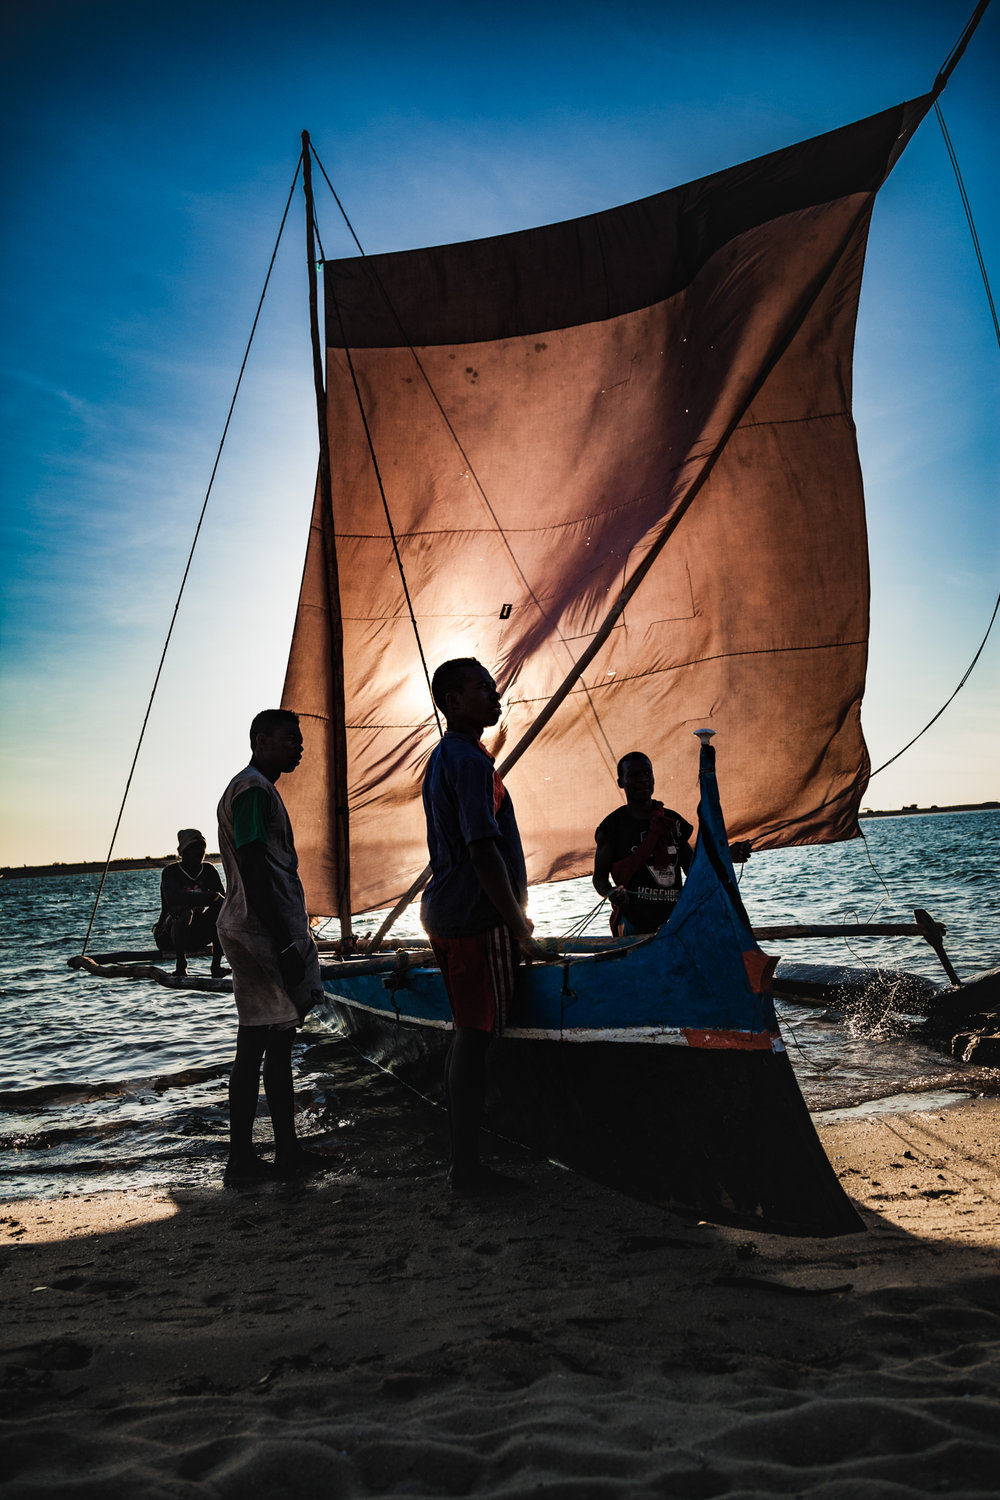 As a nomadic people, The Vezo spare little thought for the future but as the forces of globalisation change their world, their ability to plan ahead will determine their survival